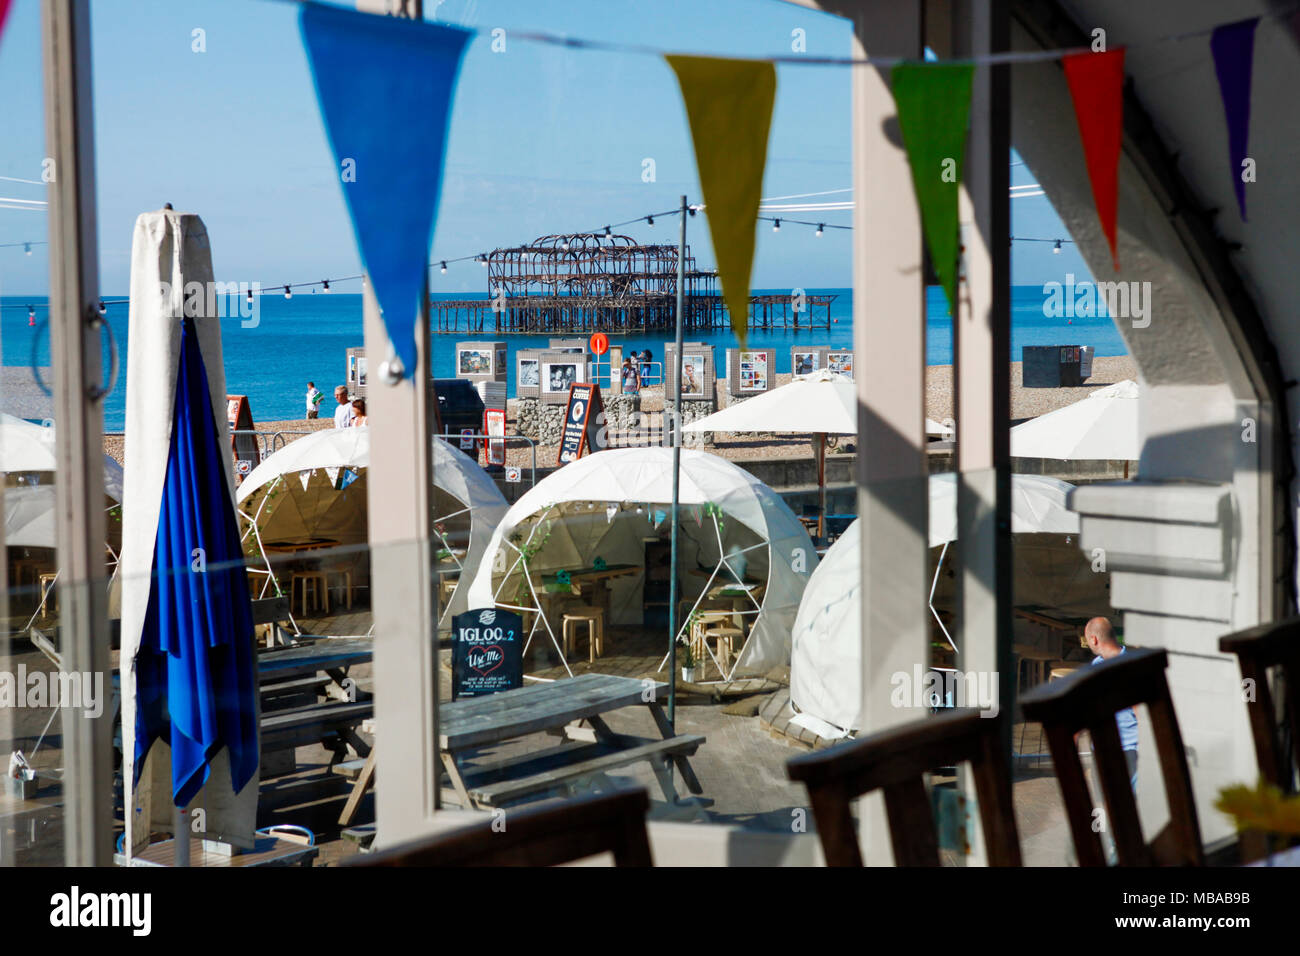 Brighton Music Hall overlooks the East Pier on a clear summer's day with drinking pods in their outdoor space for reservation. September 2017. Stock Photo